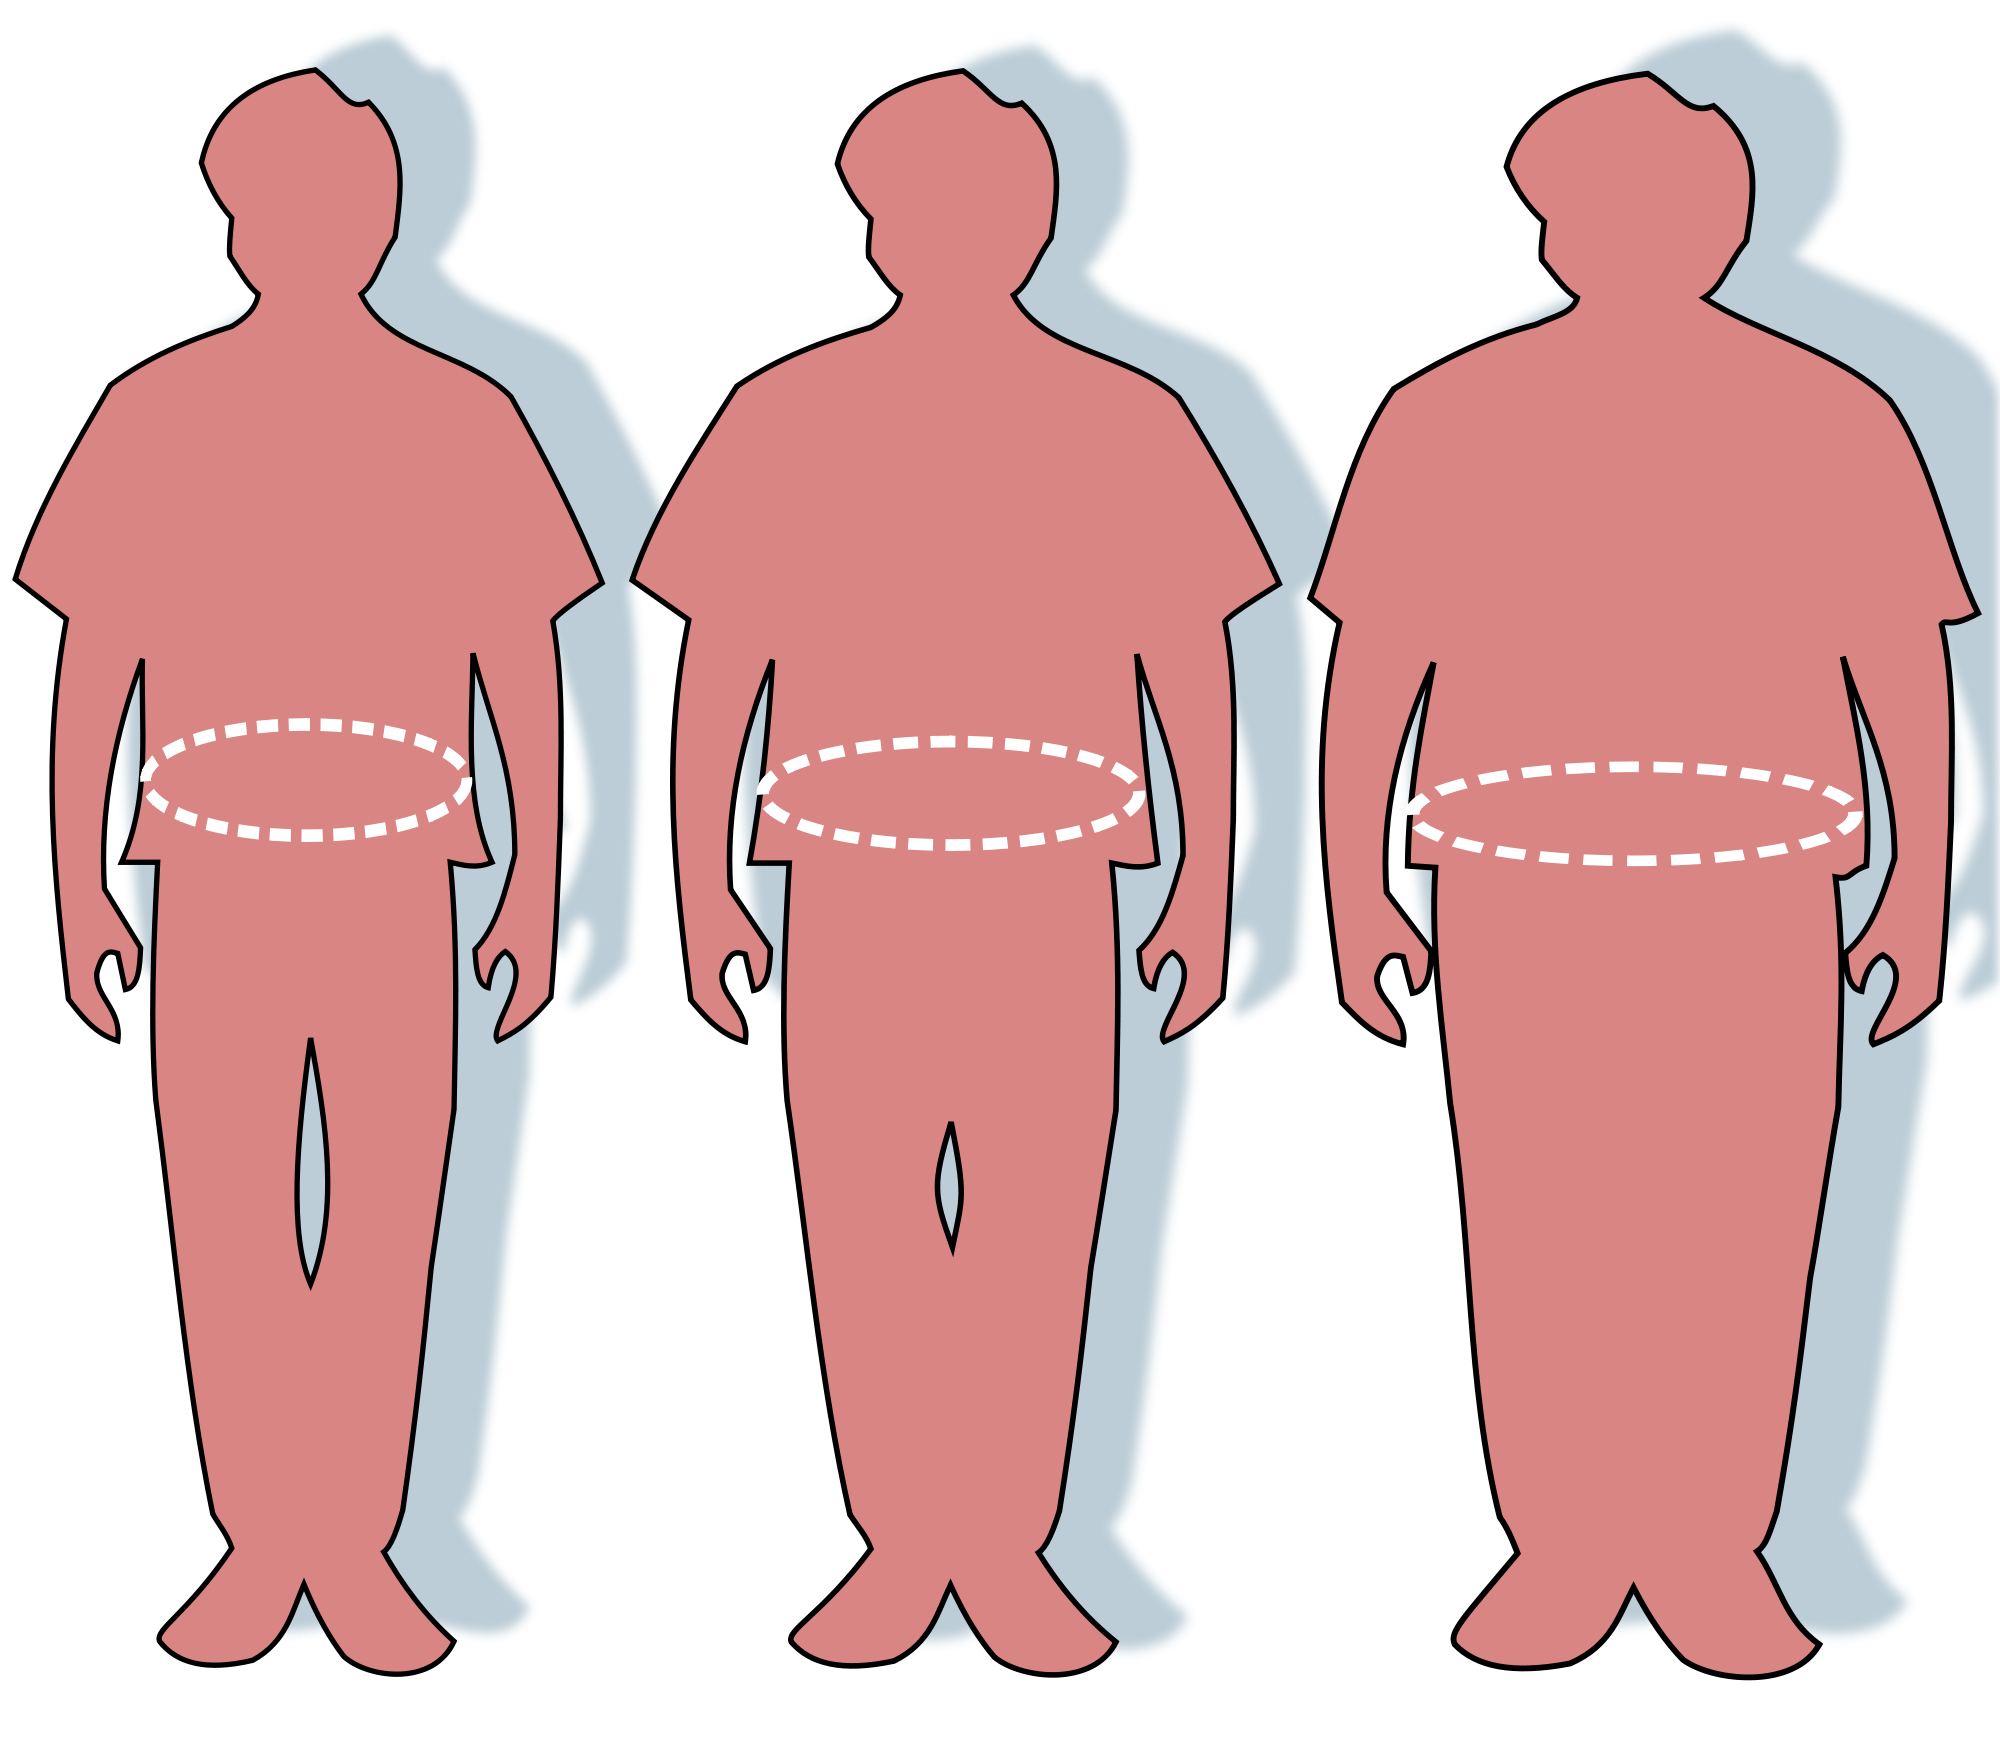 Insights into fat signaling. Weight clipart fit person